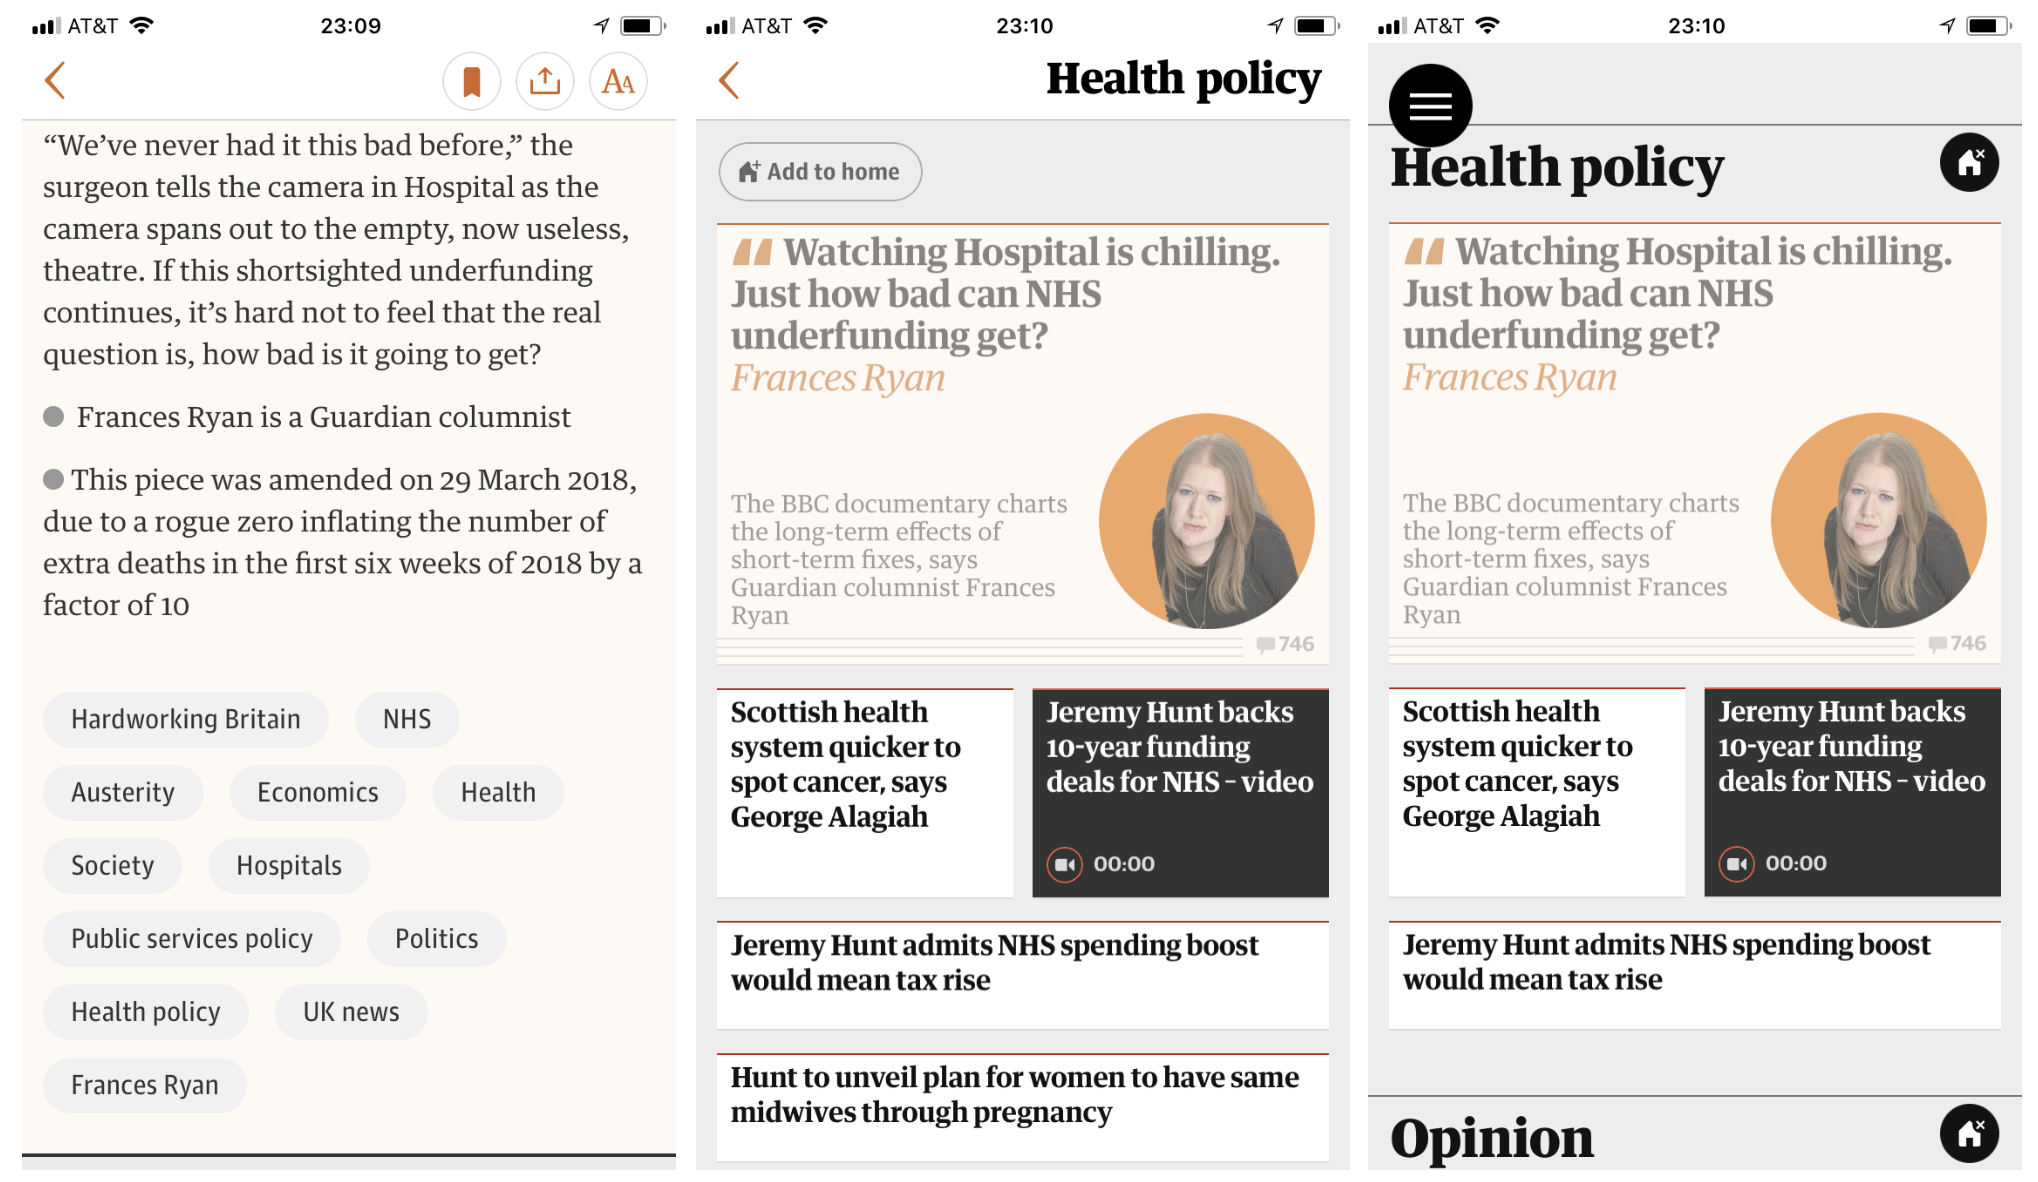 In The Guardian app, the user can choose a topic (1) and add it to the home page just by clicking on it (2&3).